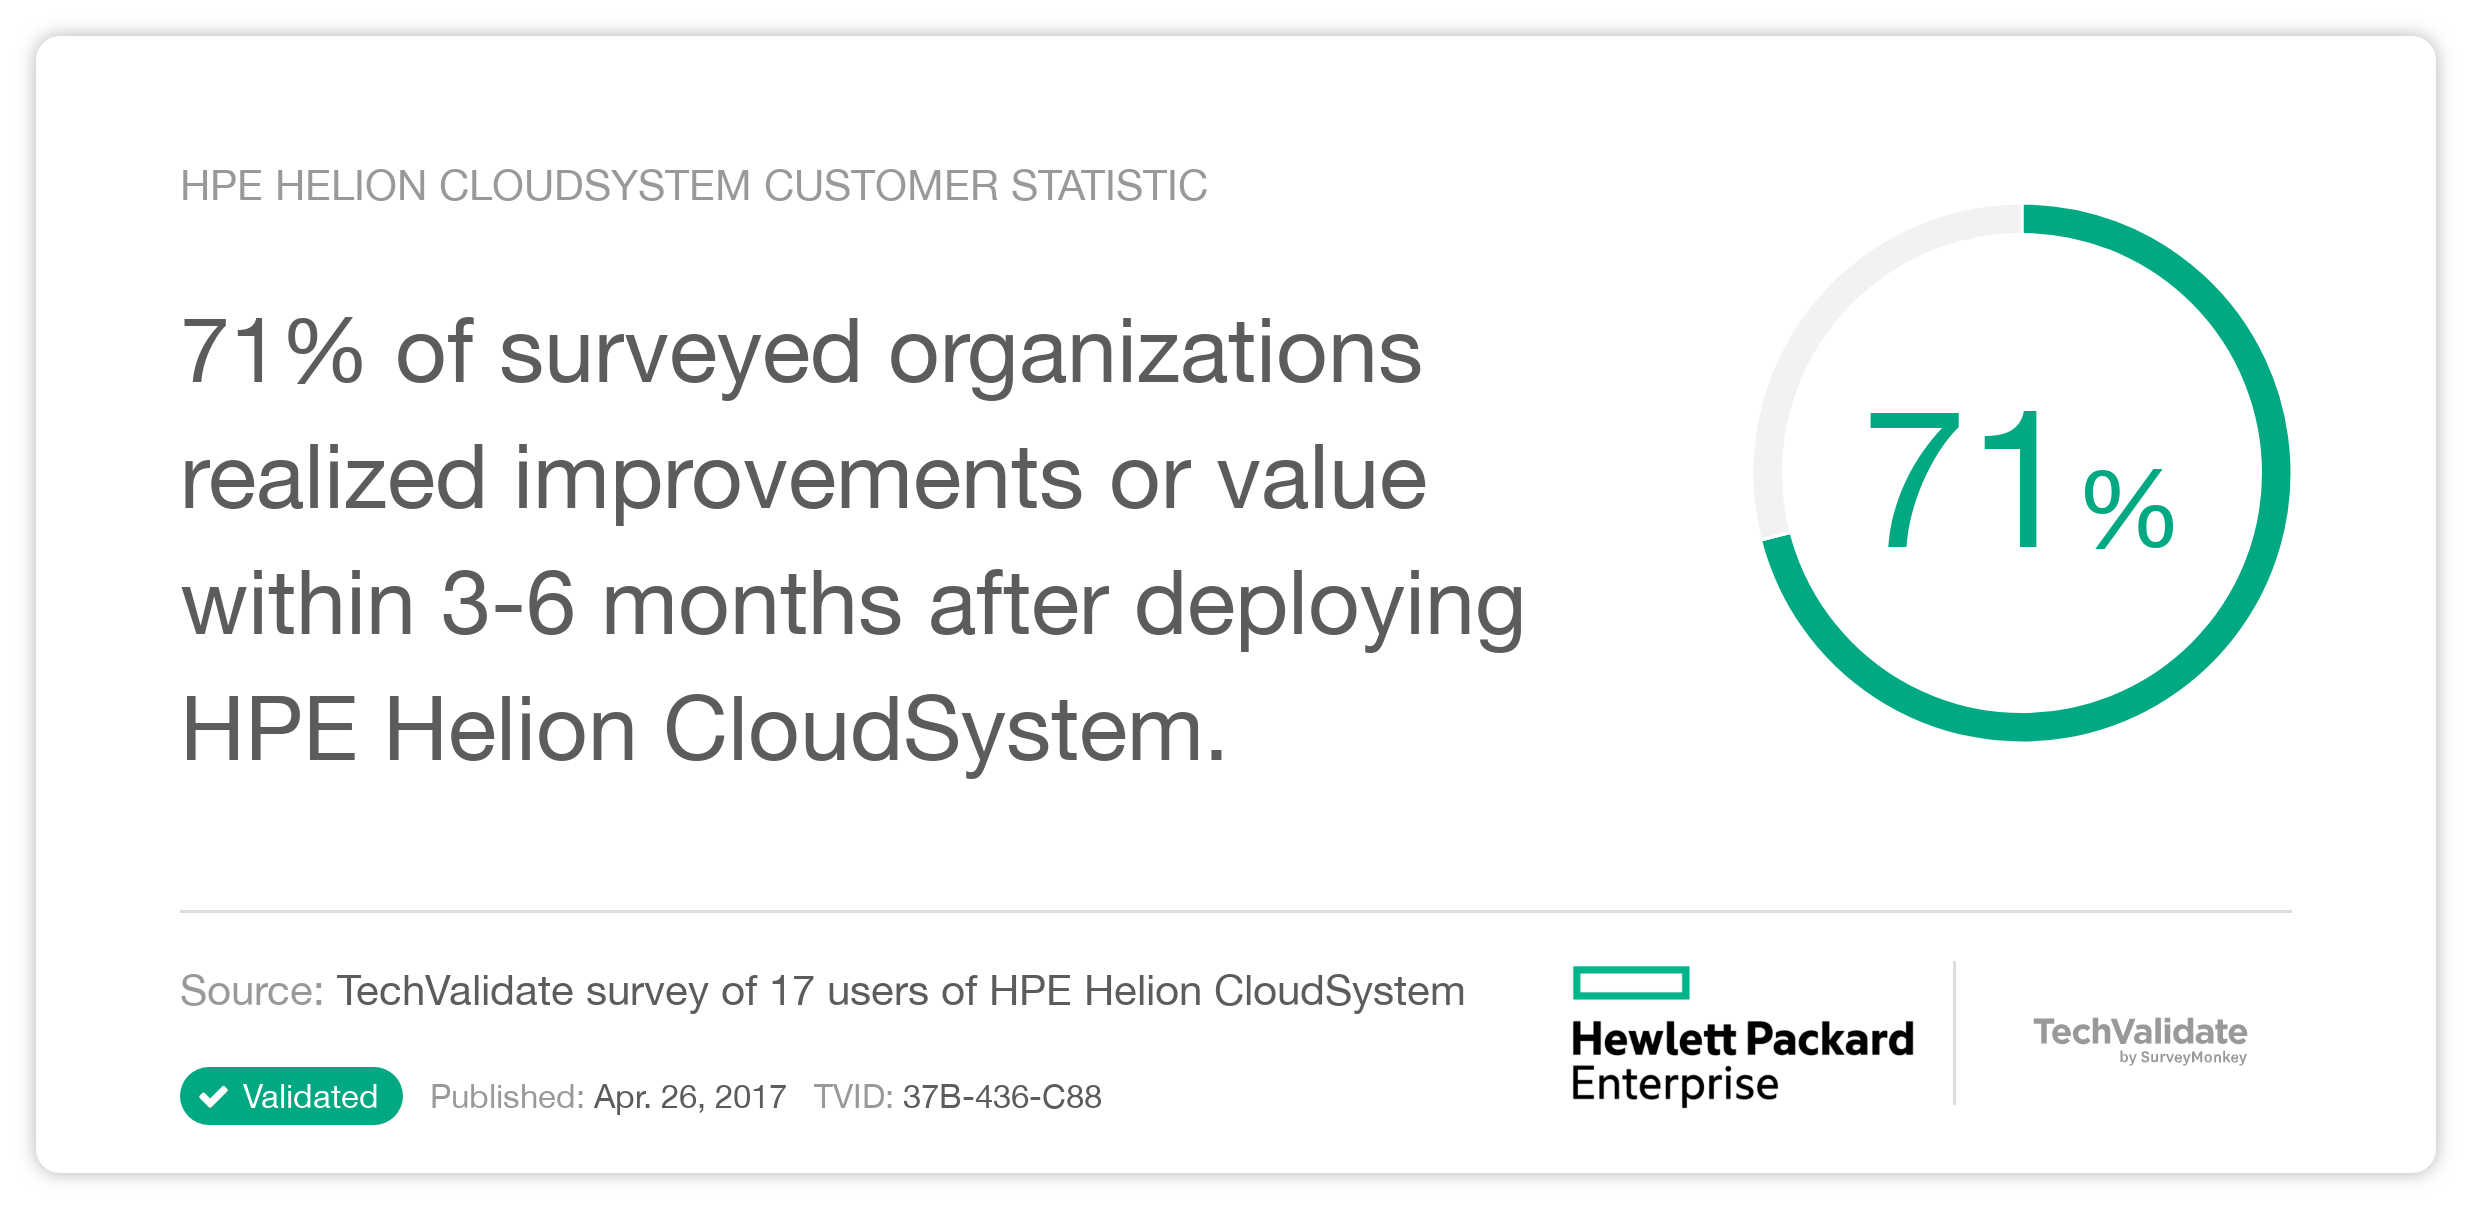 HPE Helion CloudSystem Customer Statistic